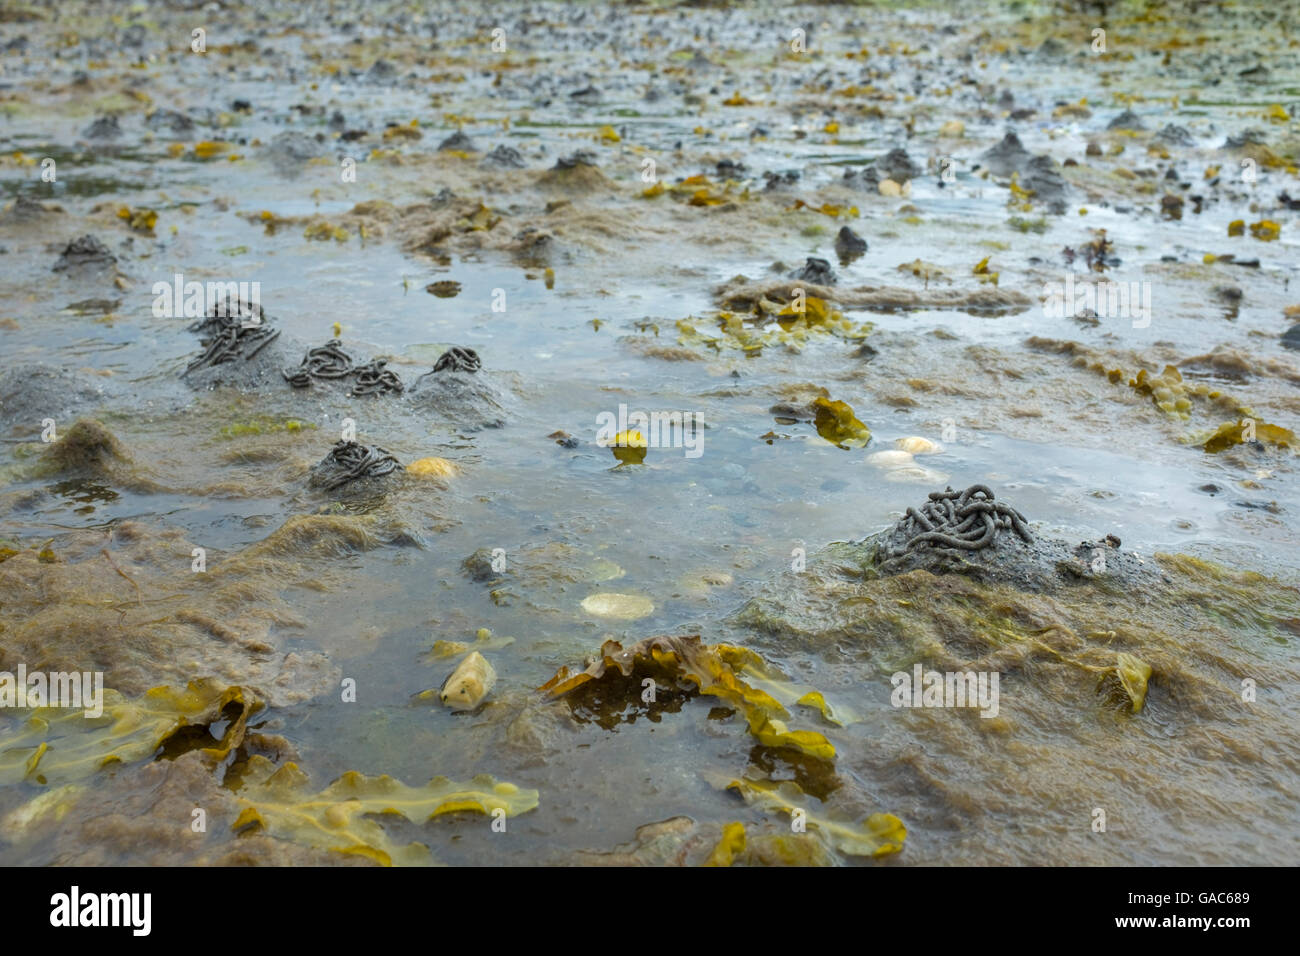 Lugworm casts on the shores of Loch Linnhe, Scotland. - Stock Image